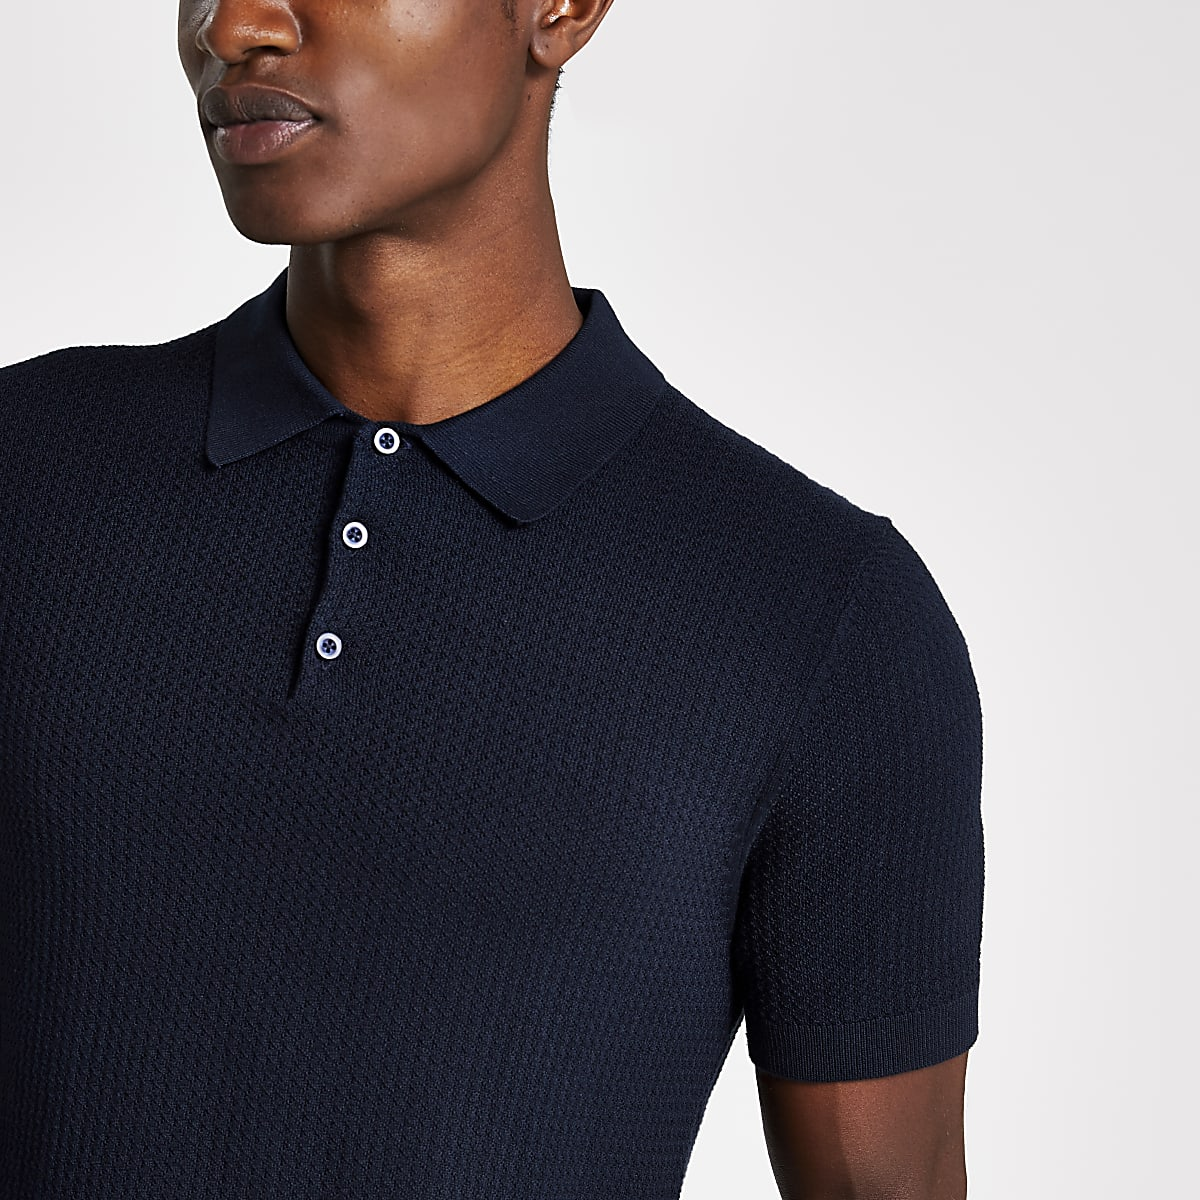 Selected Homme – Polo en maille bleu marine